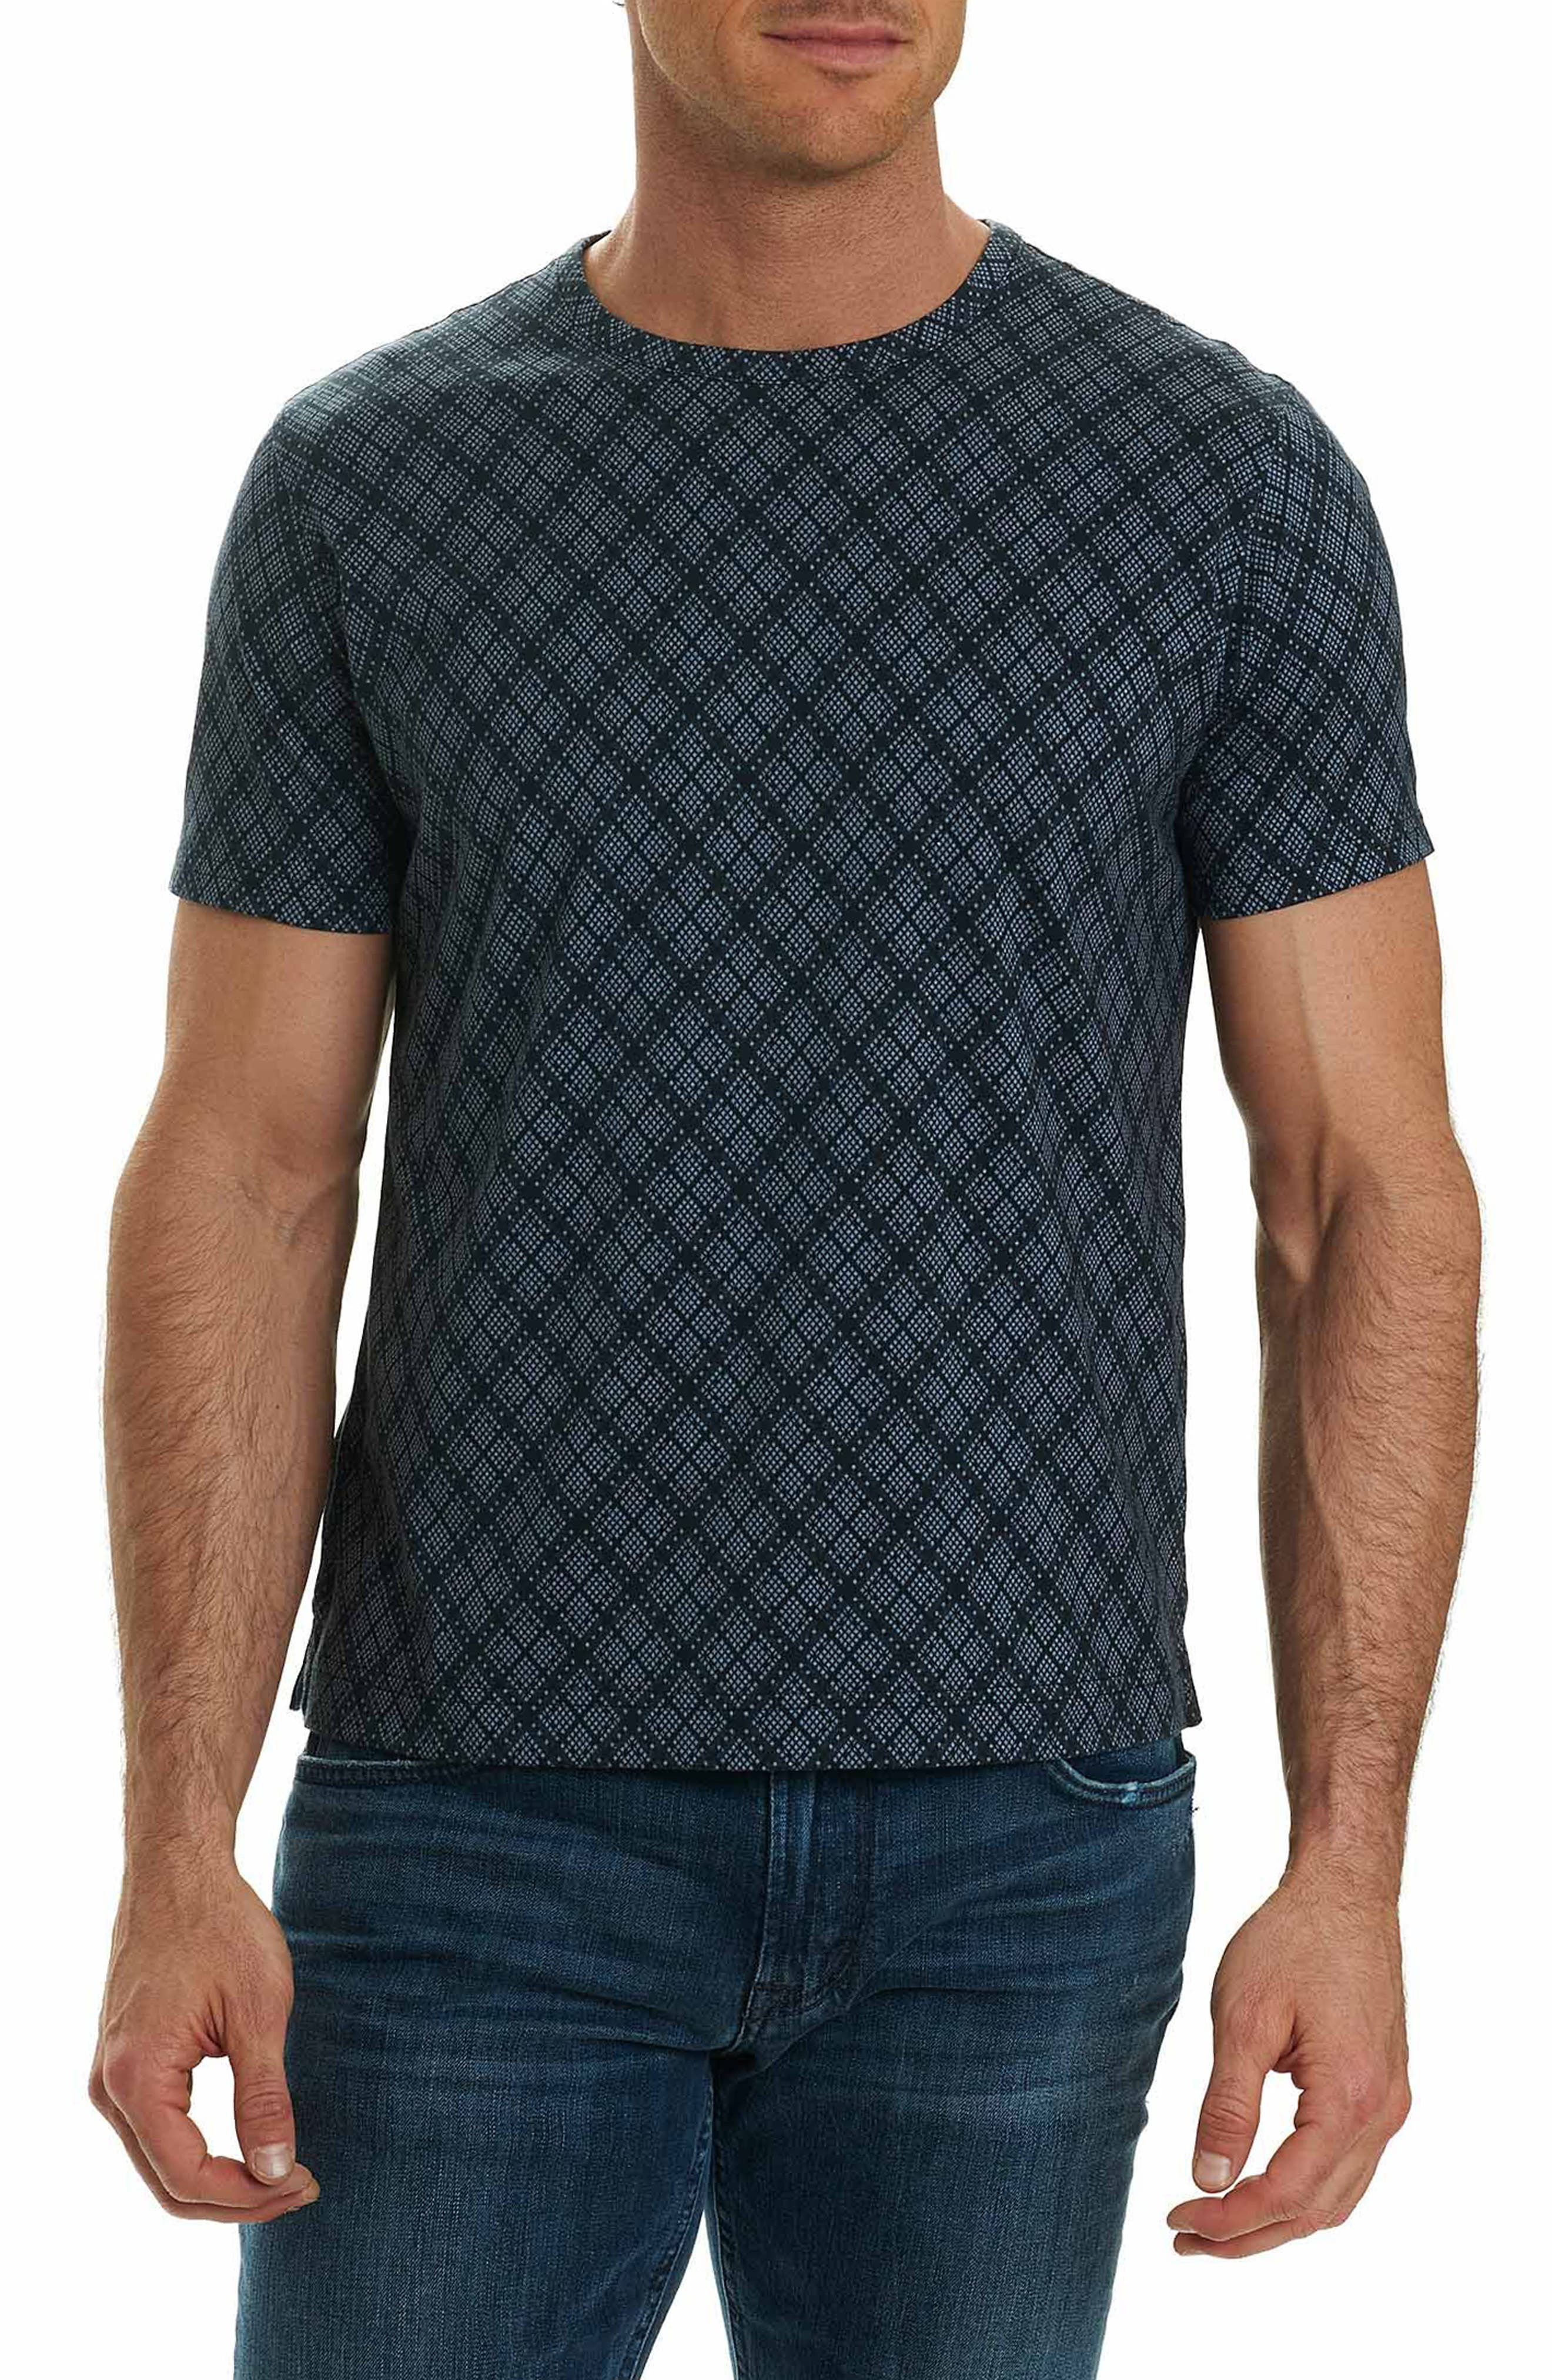 Main Image - Robert Graham Tirana Print T-Shirt